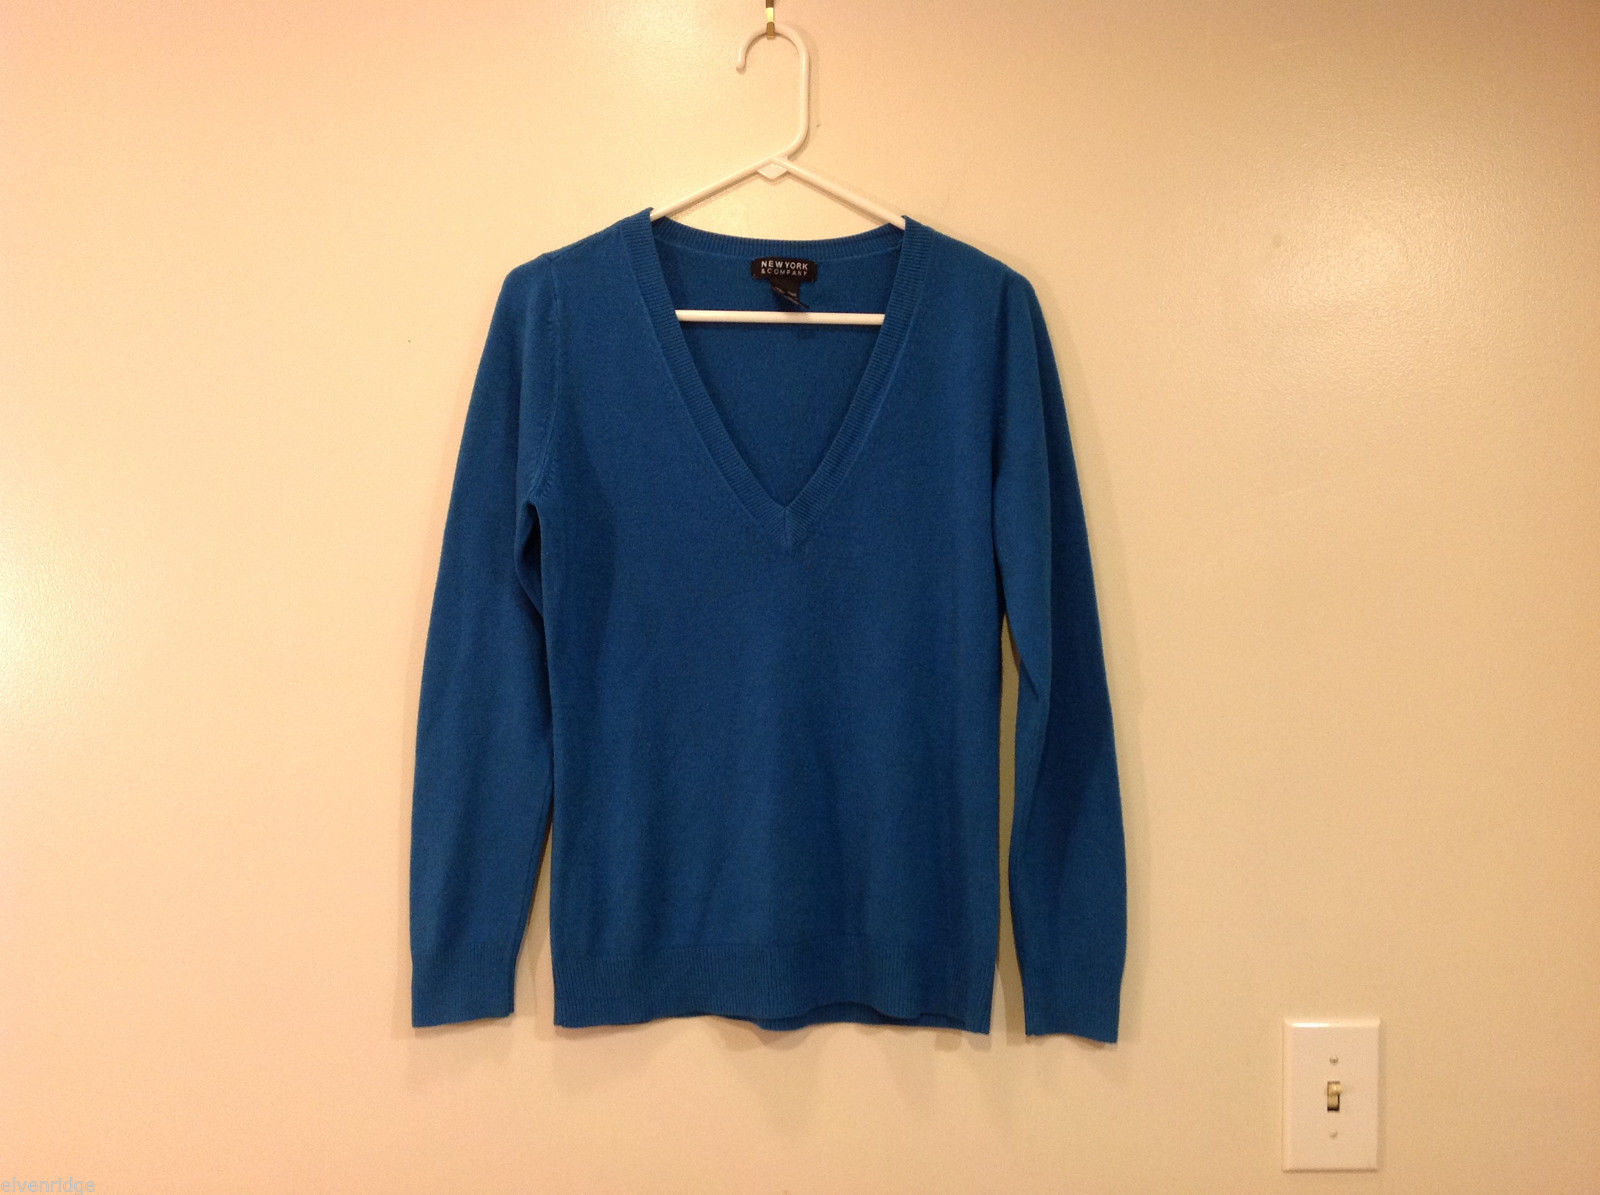 New York & Company Deep V-neck Teal (Blue/Green) 100% Acrylic Sweater Size M